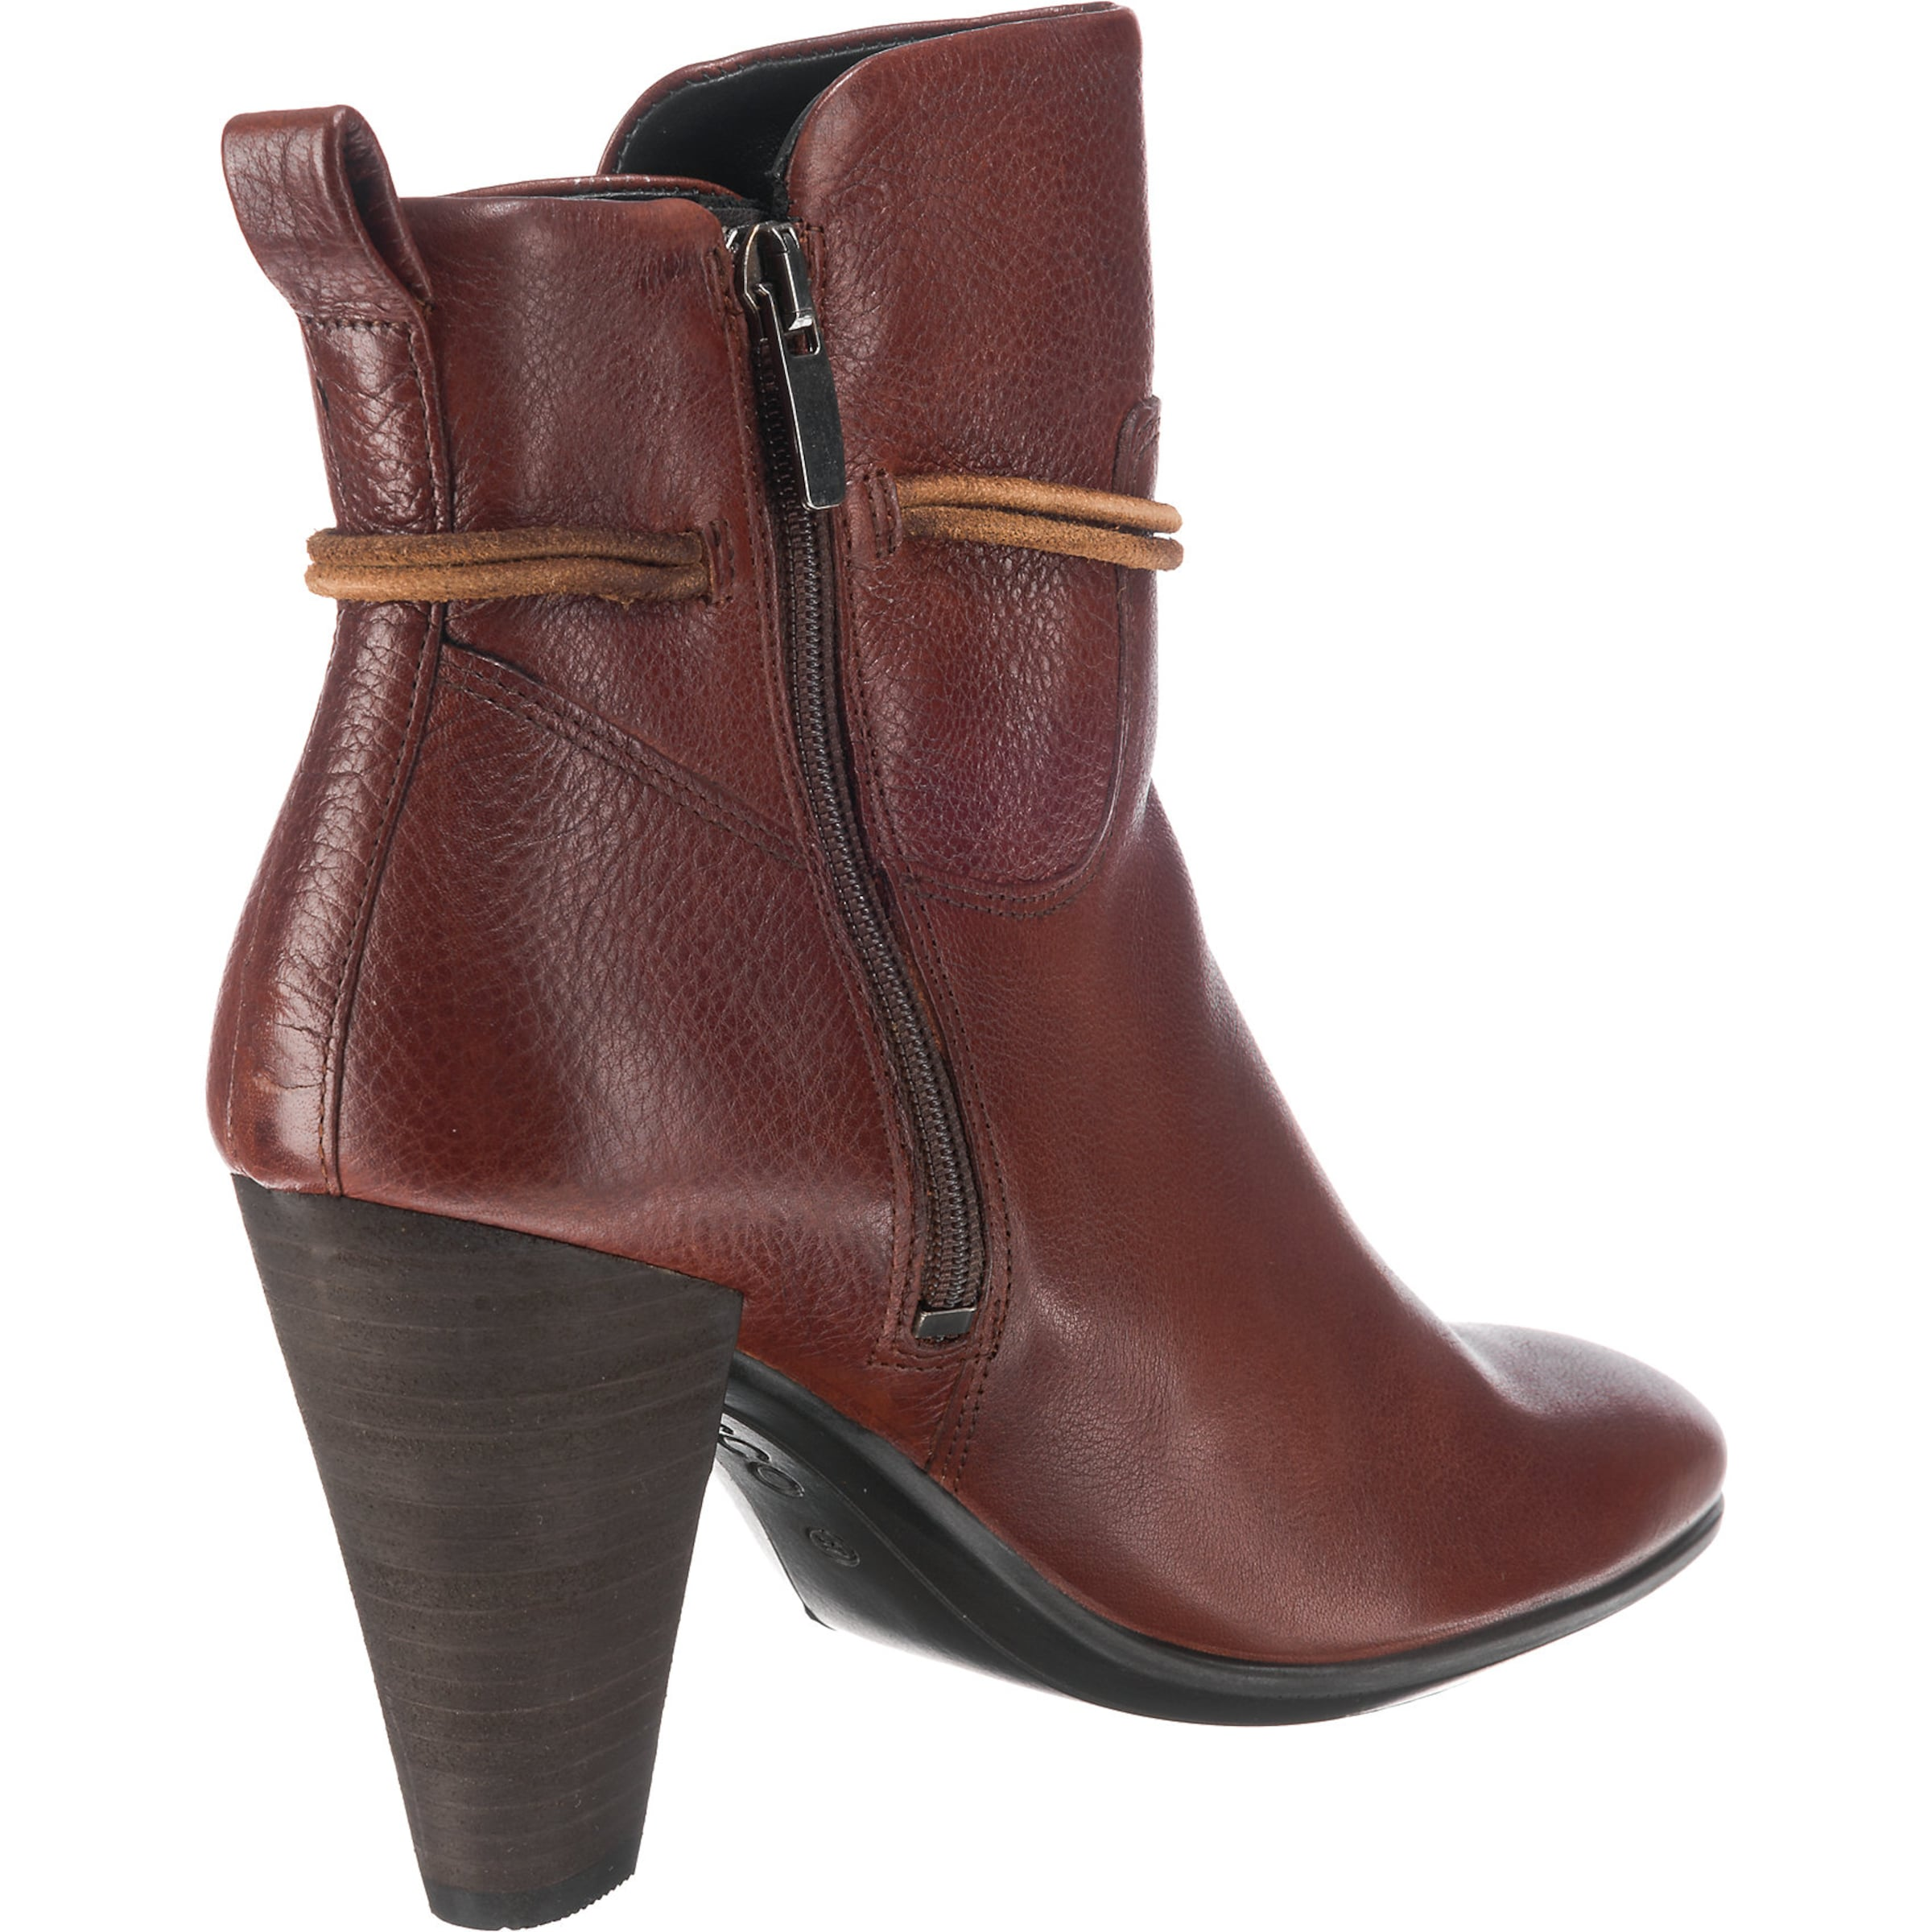 Billiges Outlet-Store ECCO Ankle Boots Freies Verschiffen Heißen Verkauf Freies Verschiffen Verkaufsschlager CGEmtDT